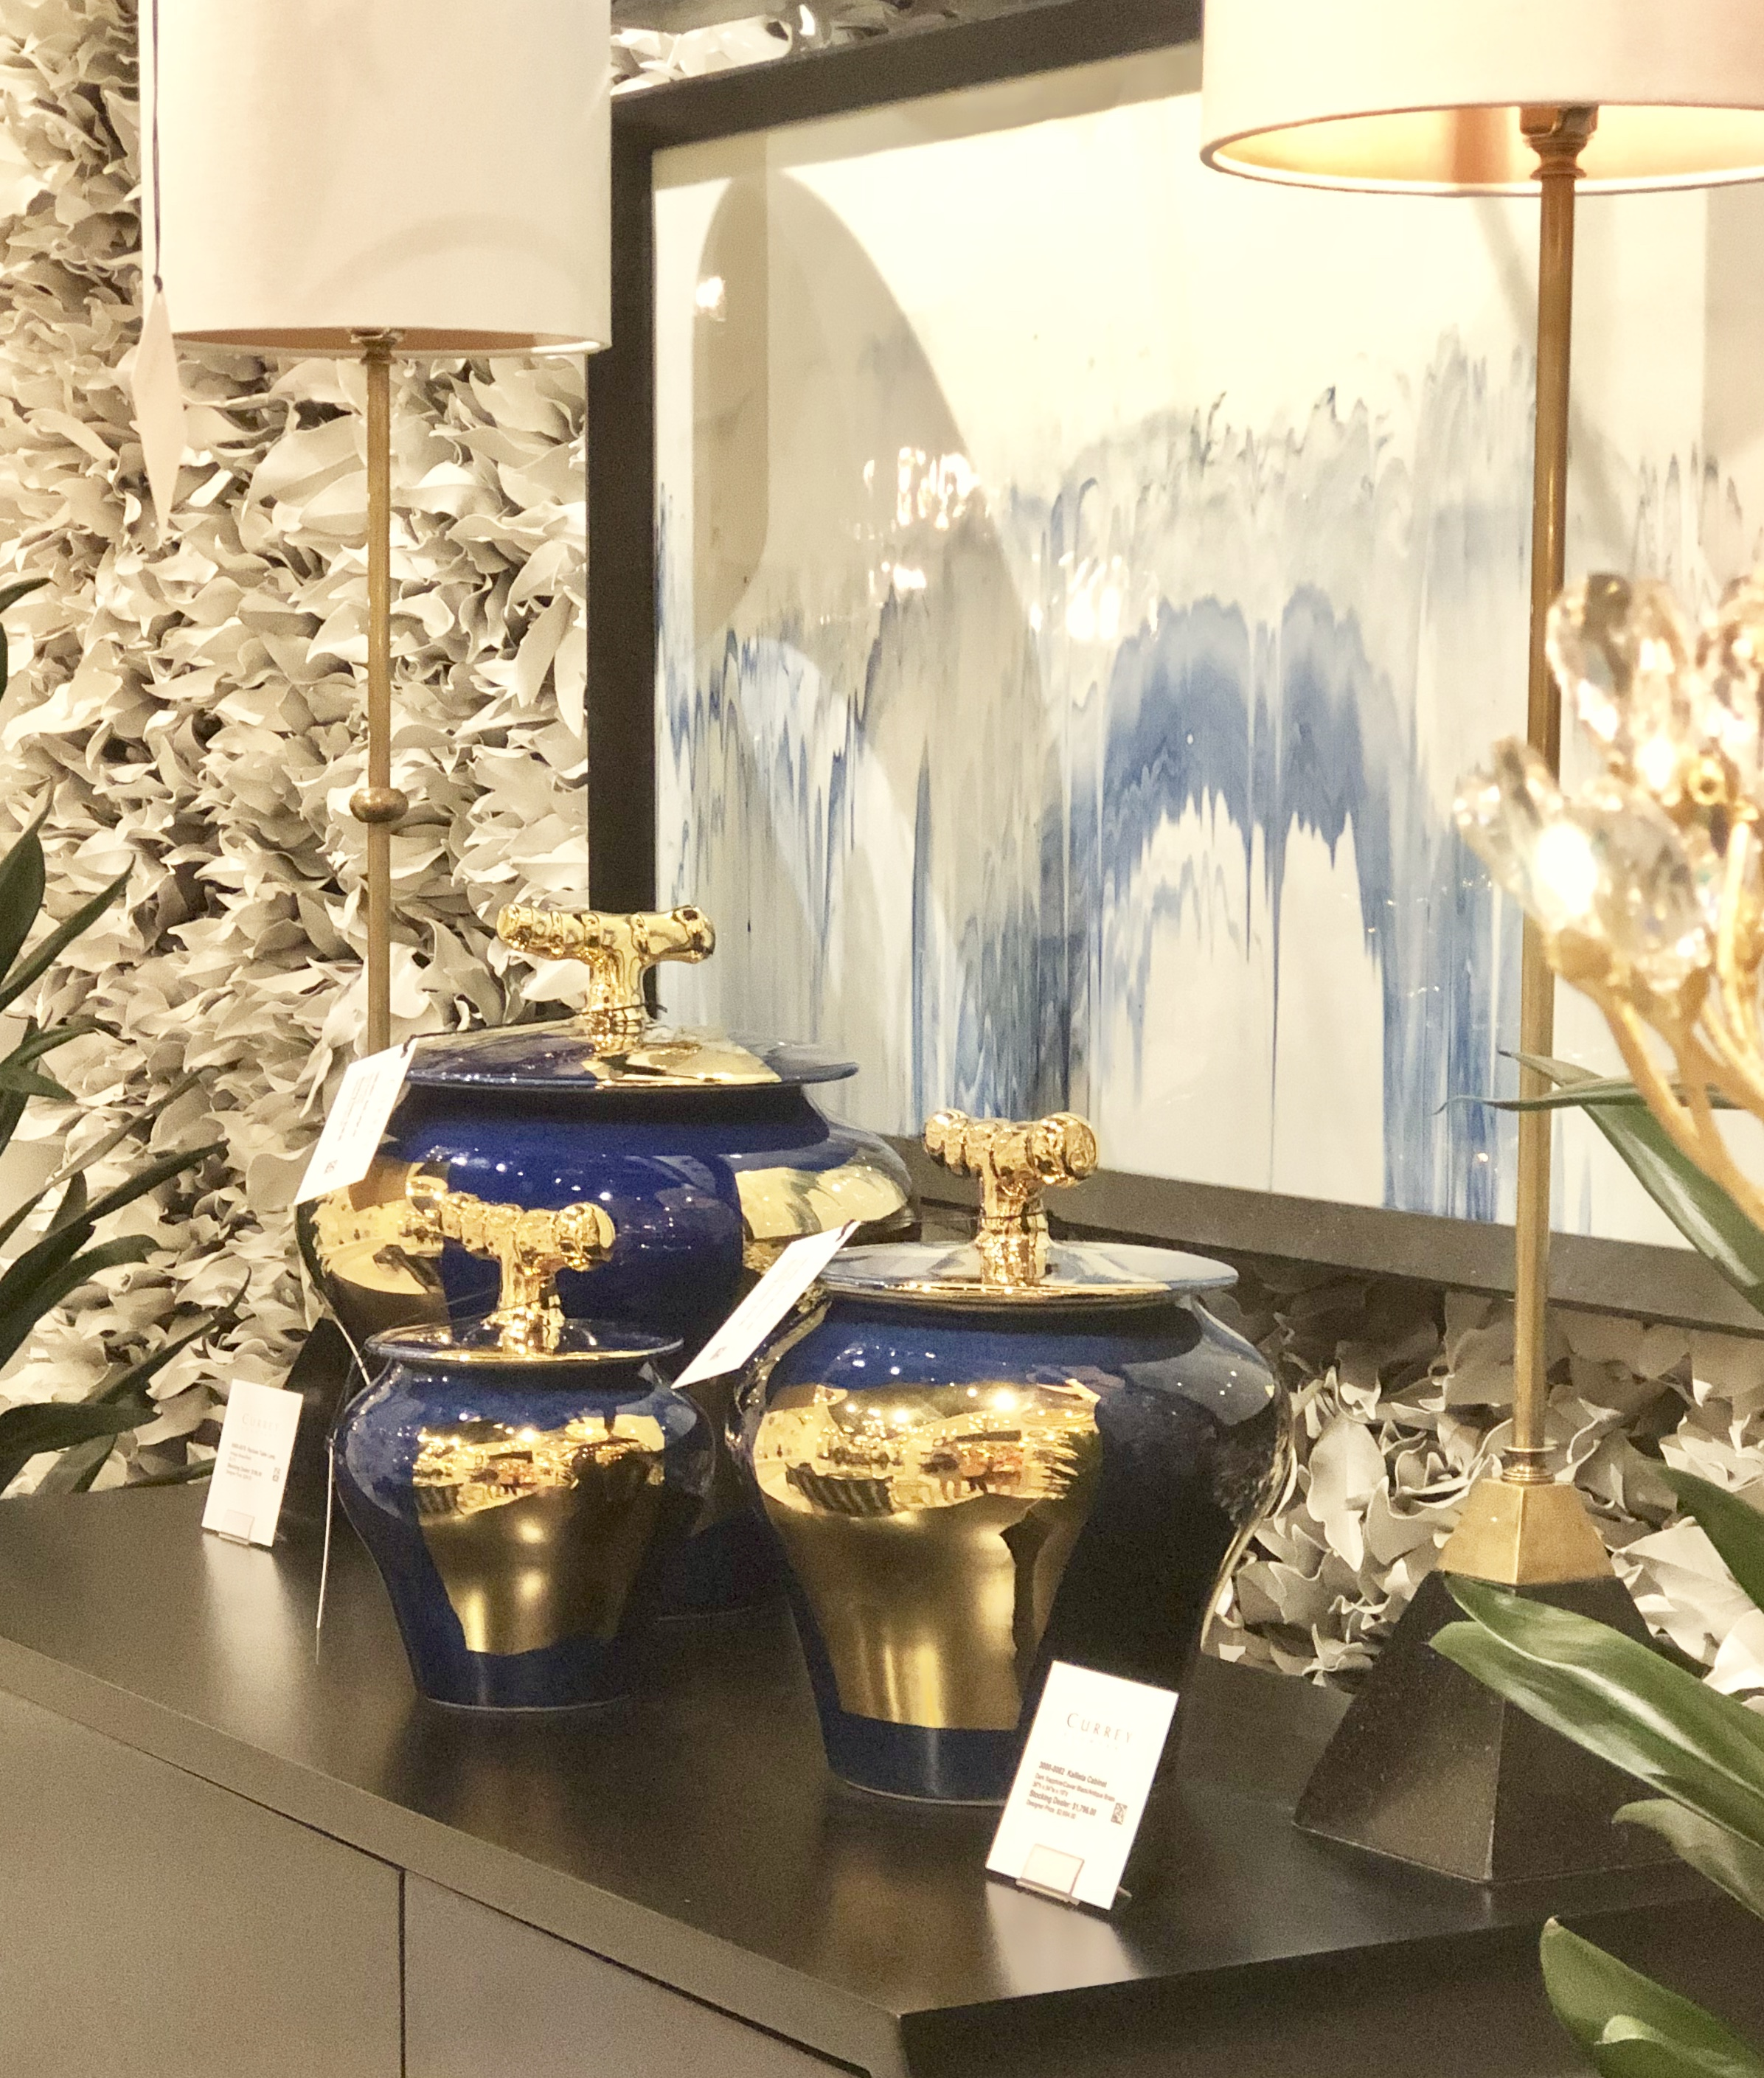 First, check out the canvas in the back—painted, loose, dripping hues. Then, notice the jars—deep blues with brush strokes of gold with a very large handle.